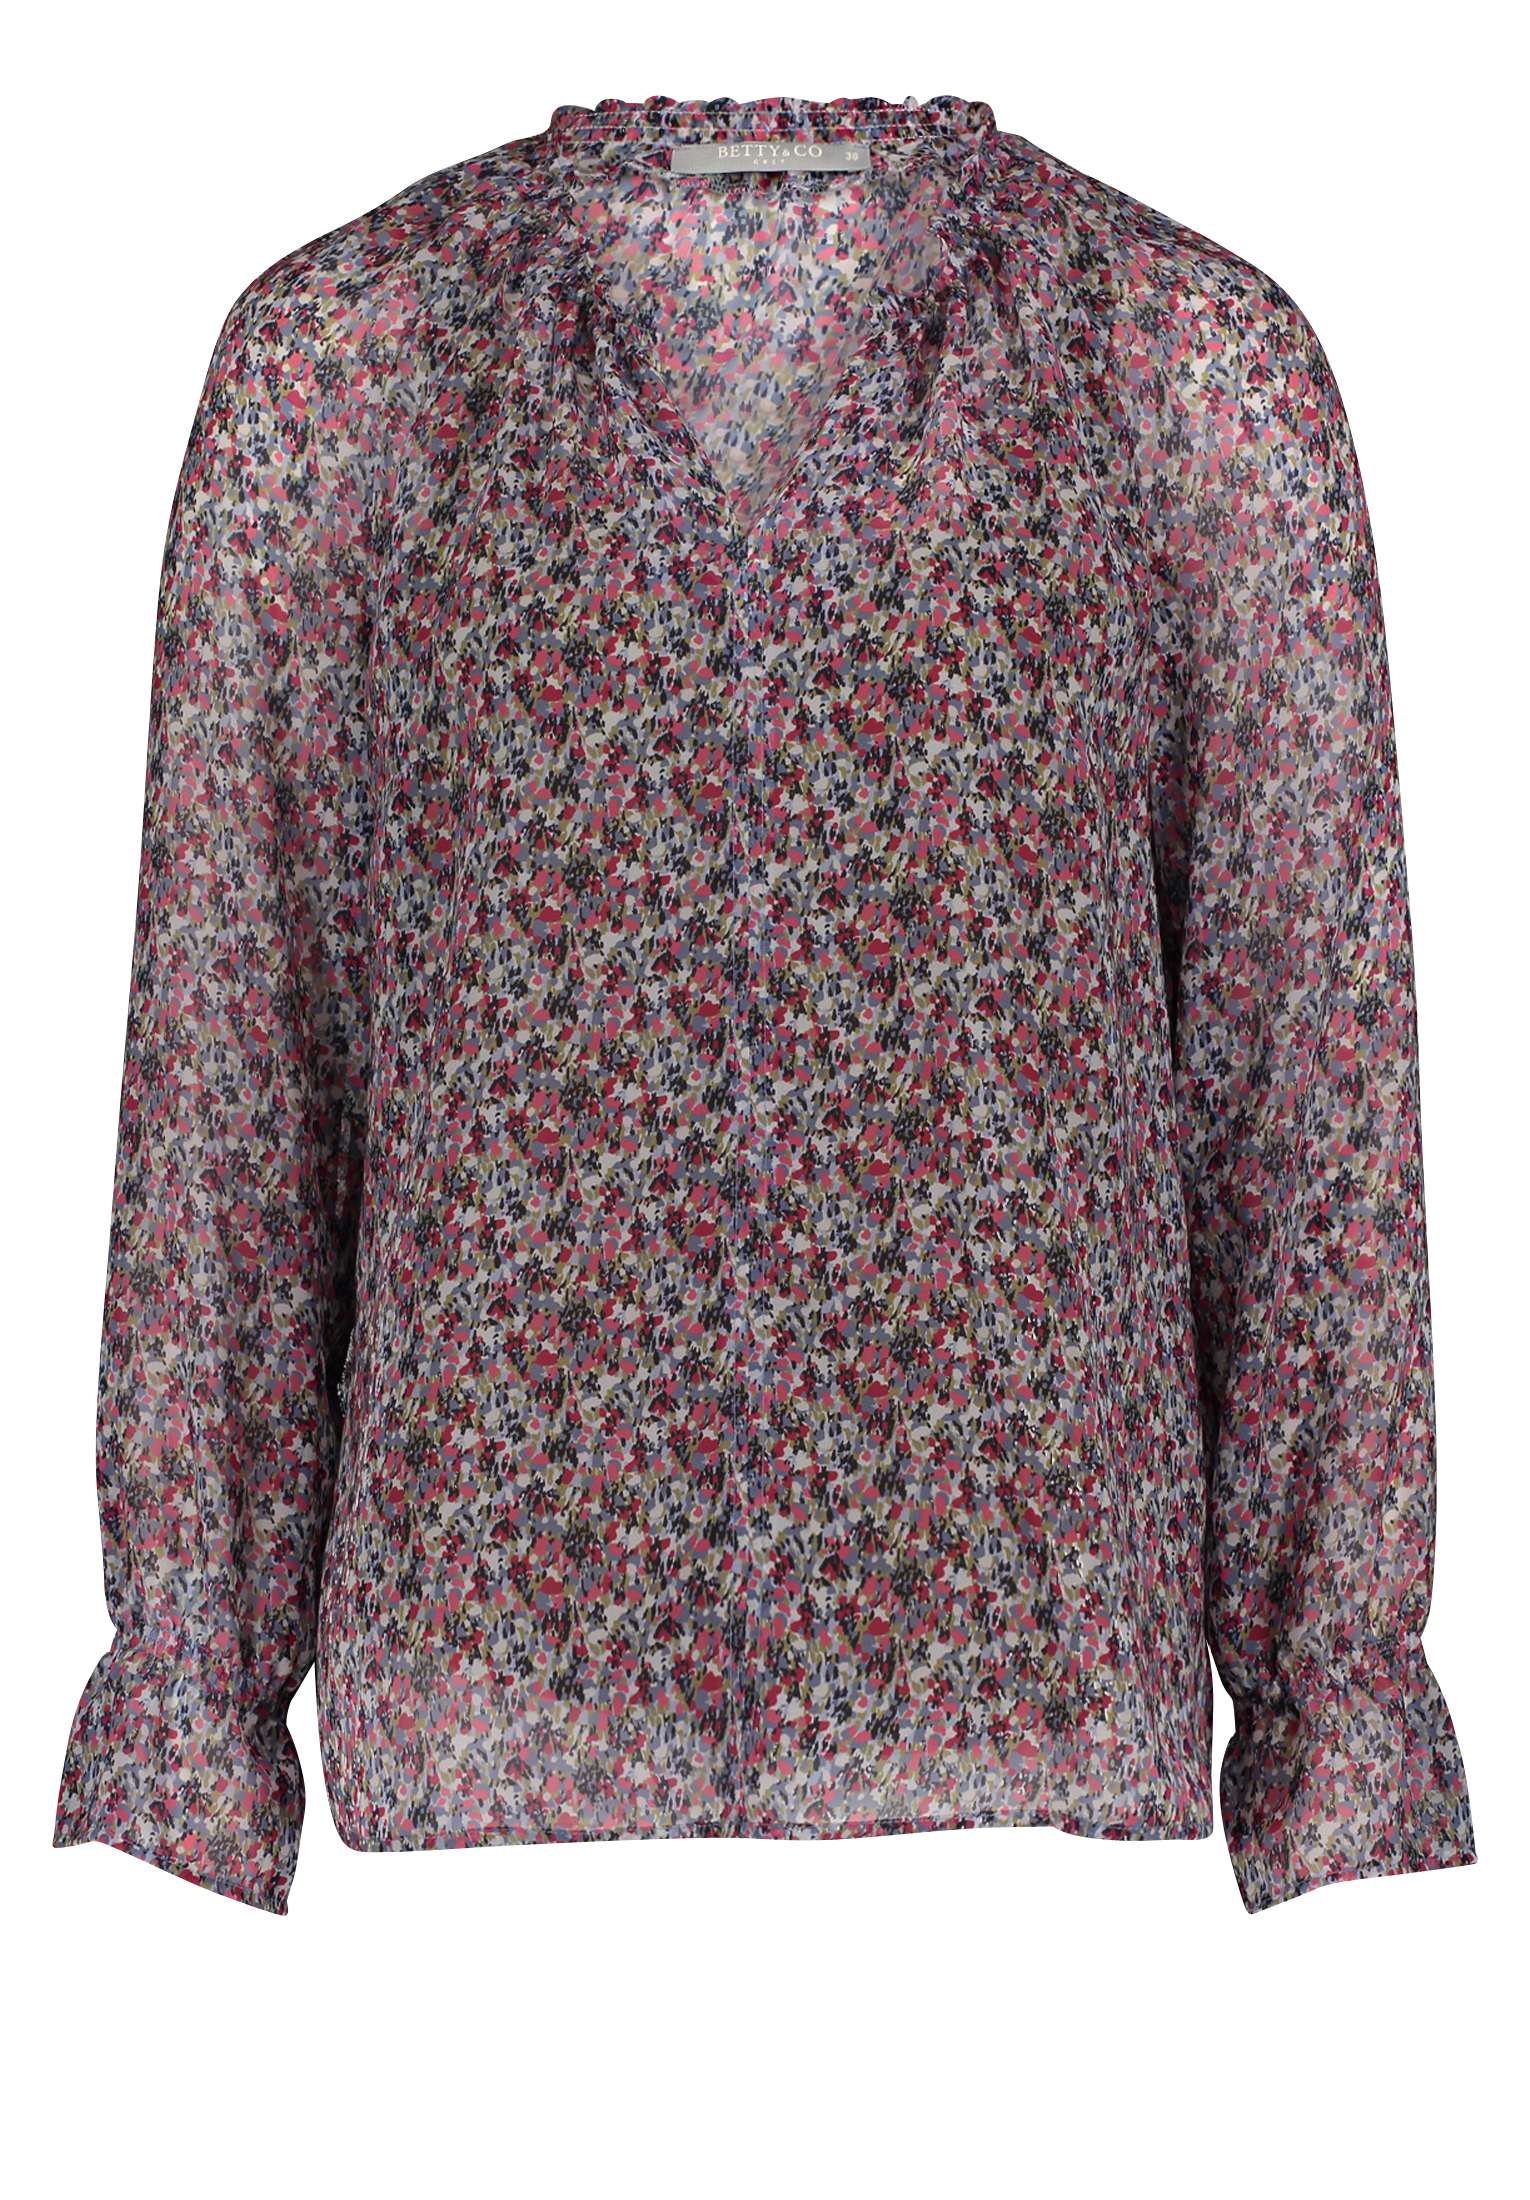 Betty & Co. Chiffonbluse floral gemustert cream/pink